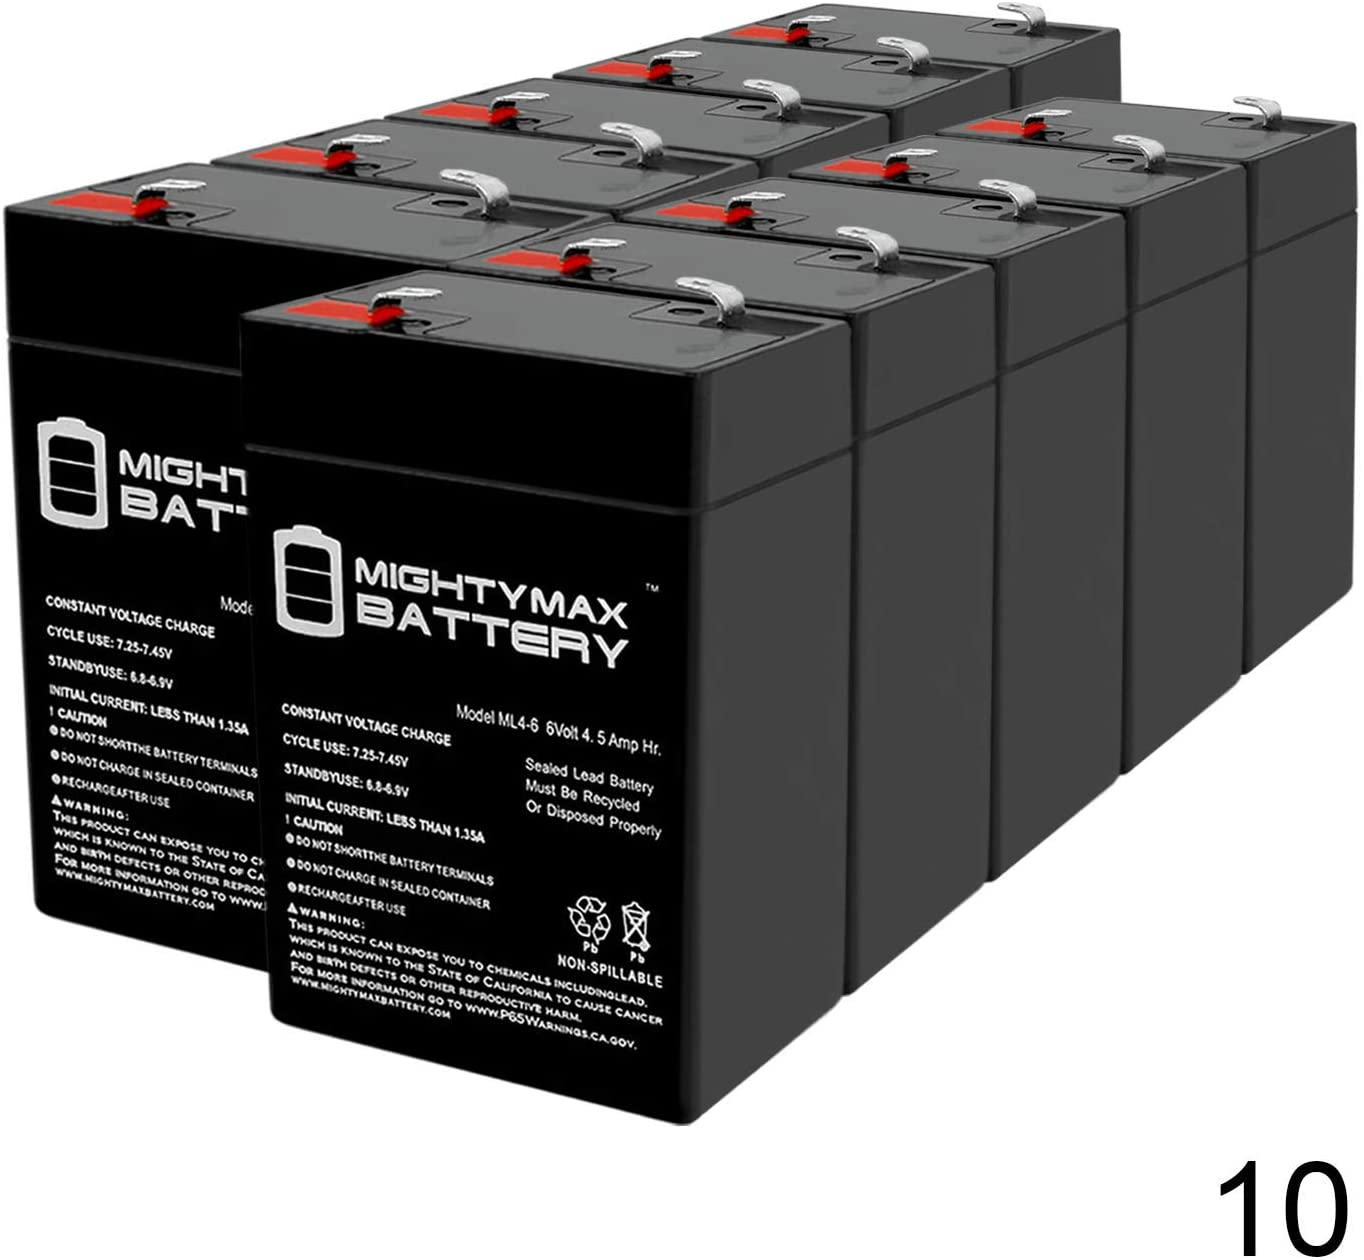 Mighty Max Battery 6V 4.5AH Battery Replacement for CA645, IT-YB645-10 Pack Brand Product